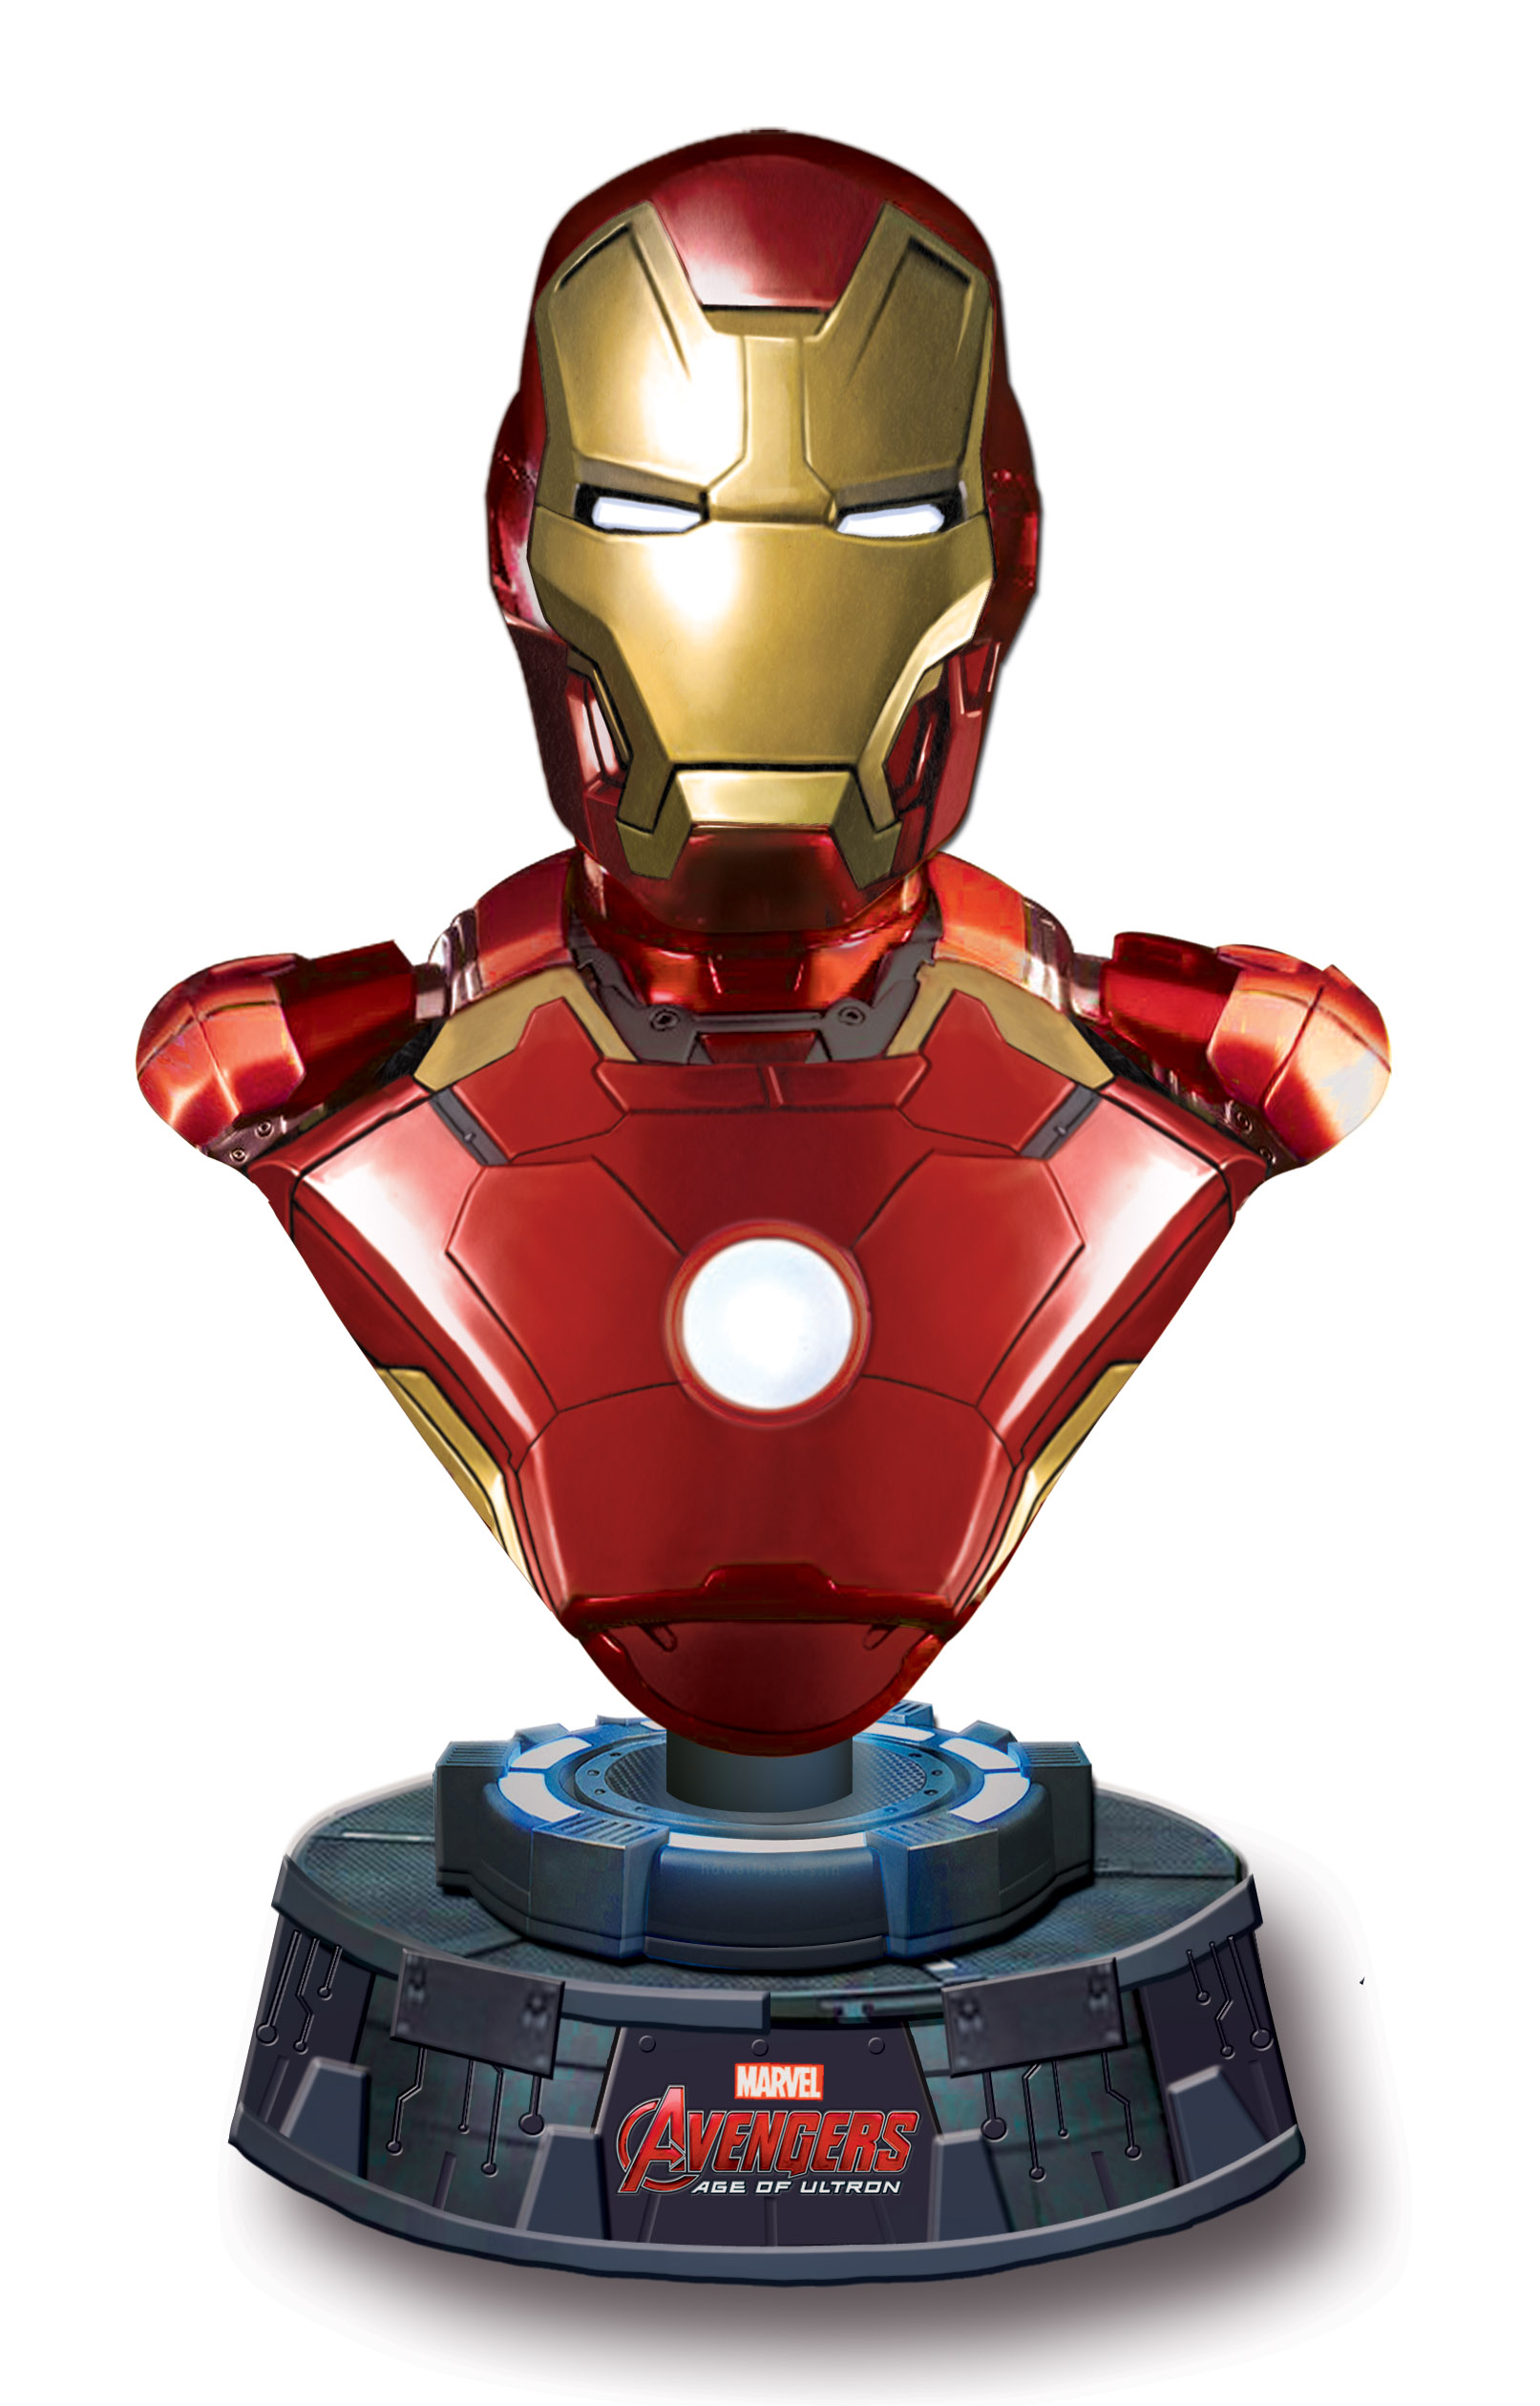 iron man is here to make your desk heroic